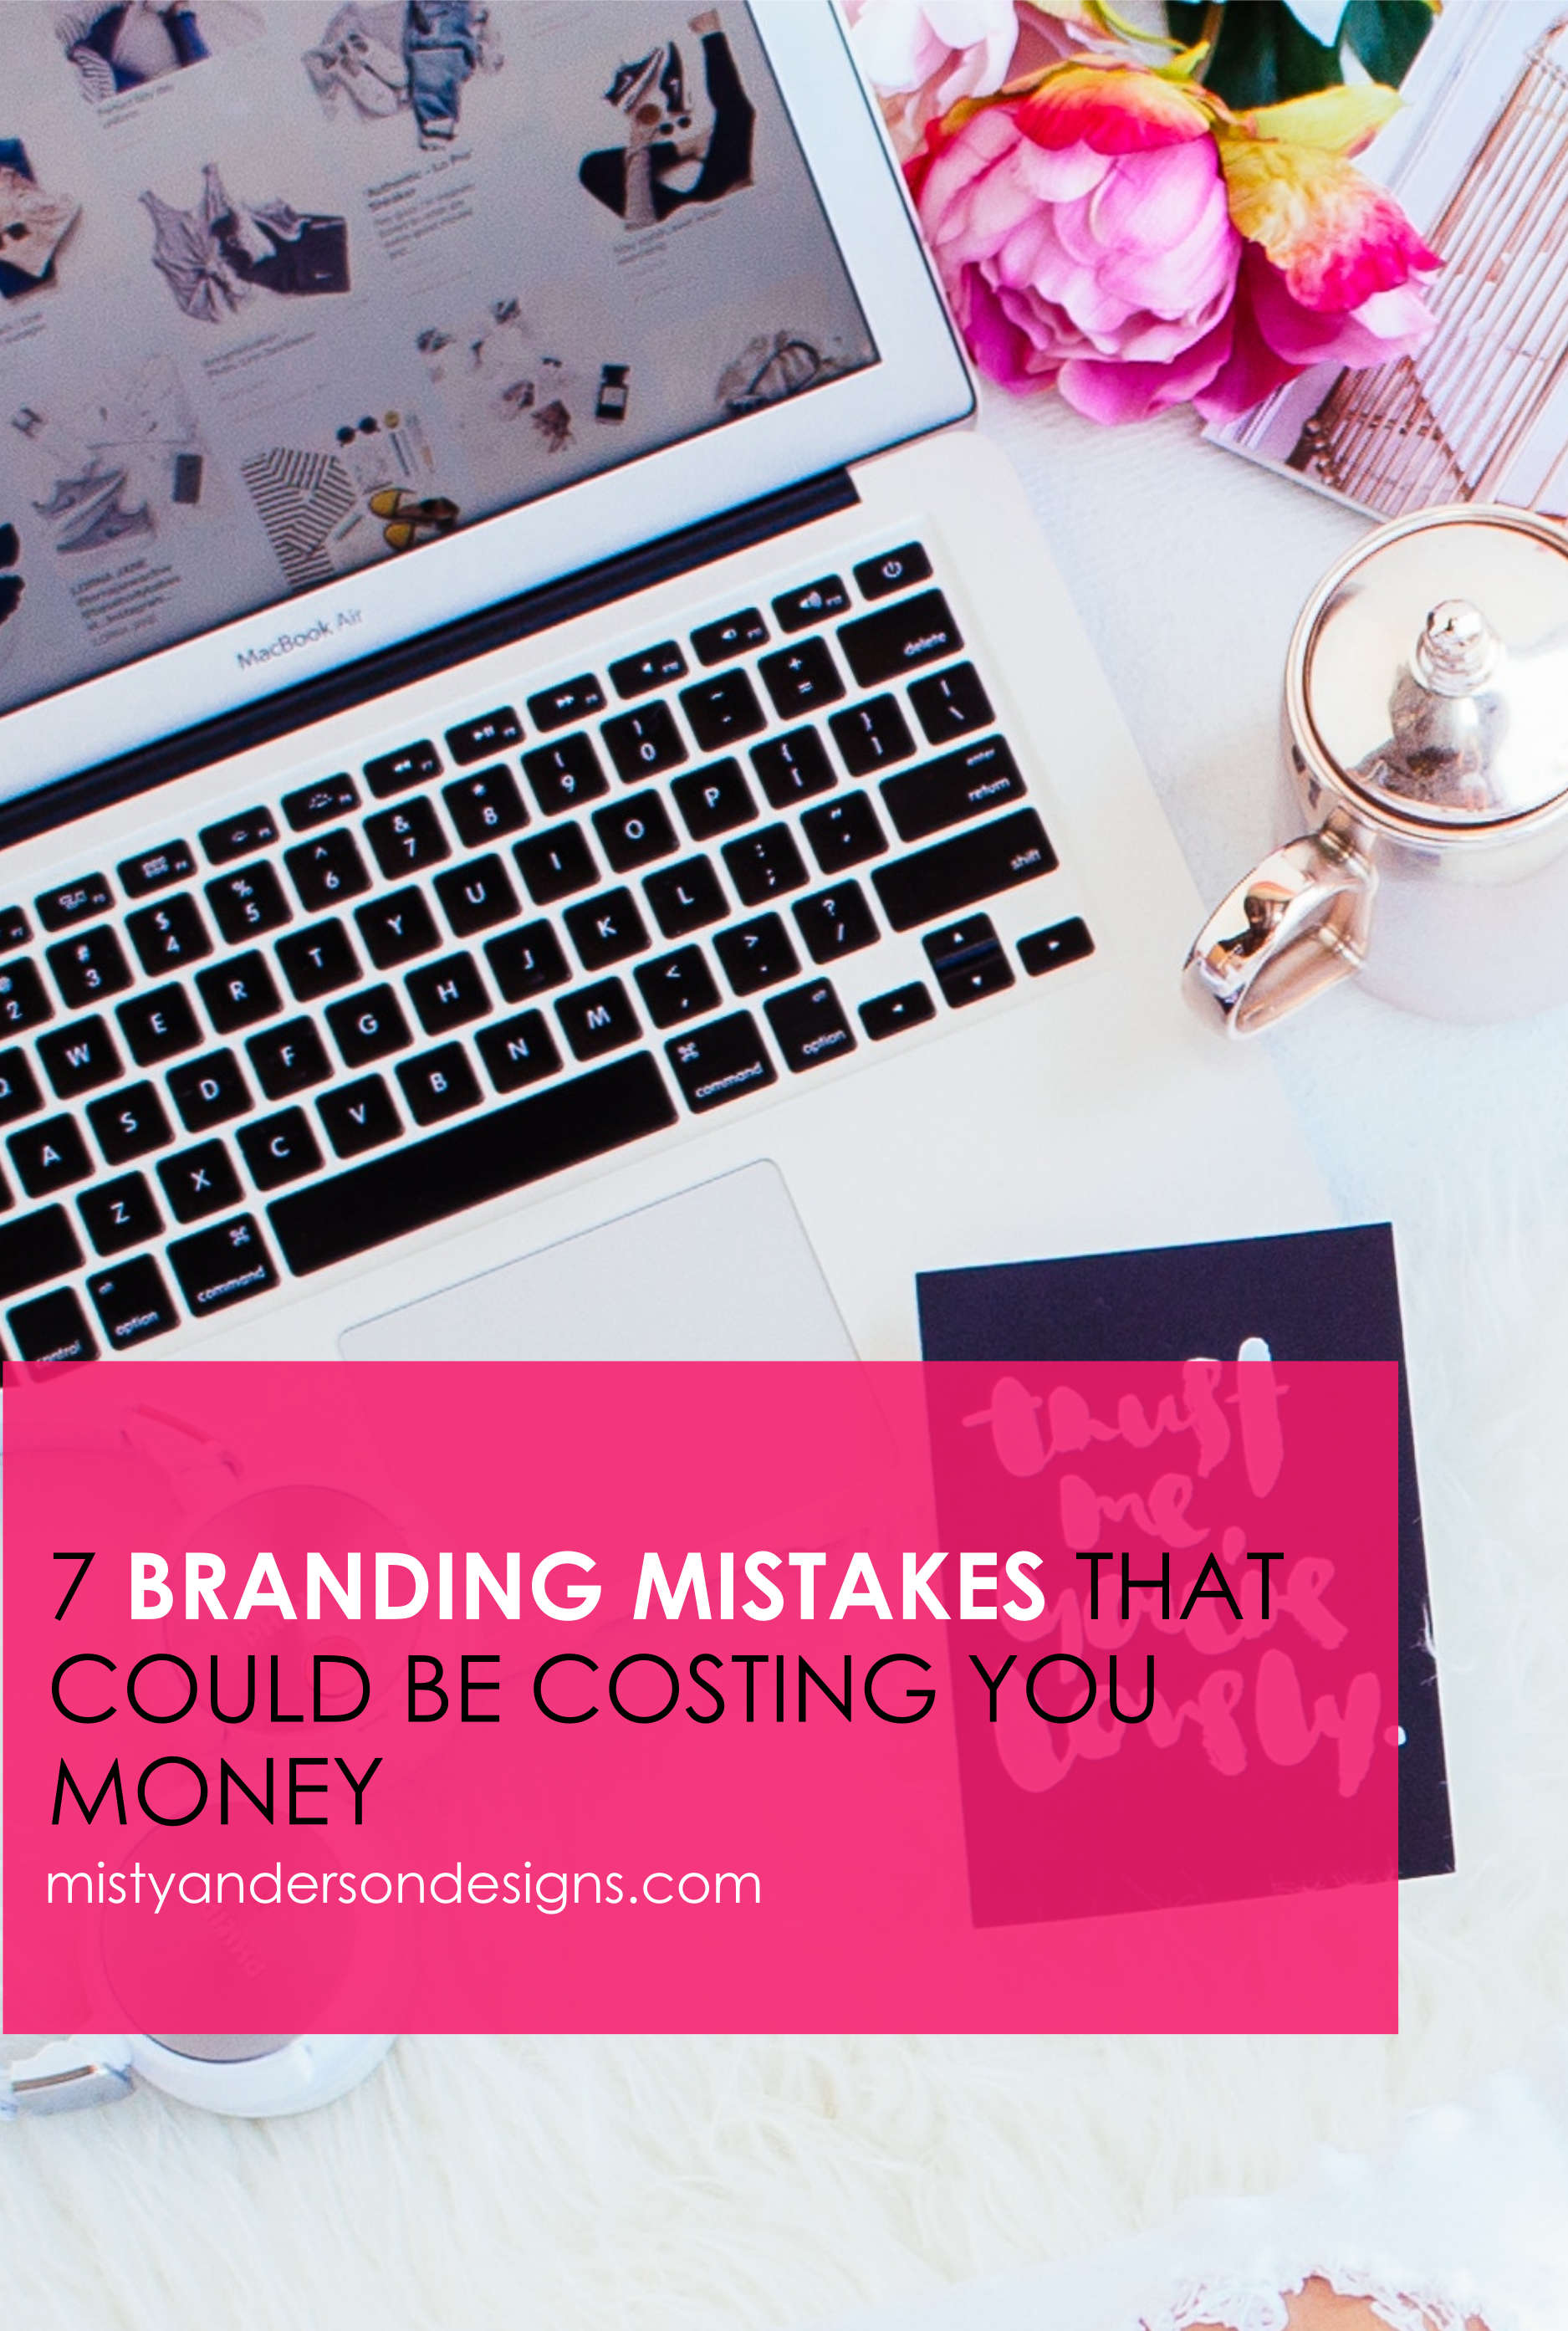 7 branding mistakes that could be costing you money